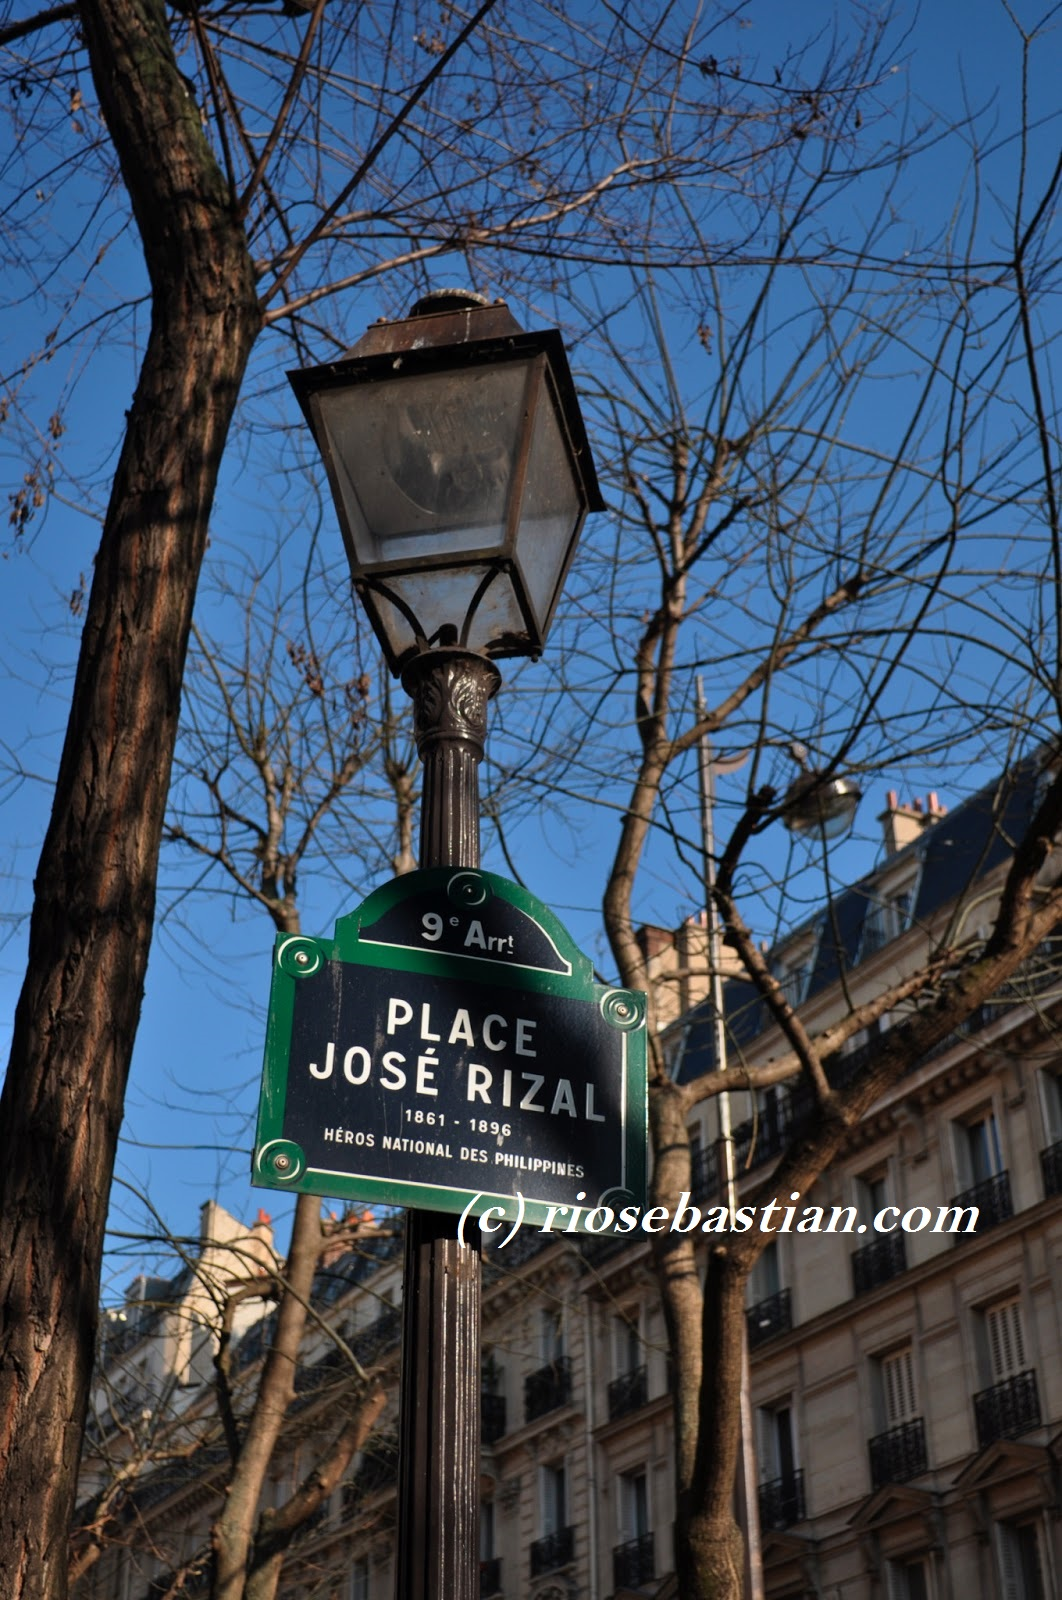 ophthalmic studies of rizal in paris Ophthalmic escapees jose rizal (1861-1896) was born in laguna in the filipino island of luzon after completing his school in his native country he travelled to.